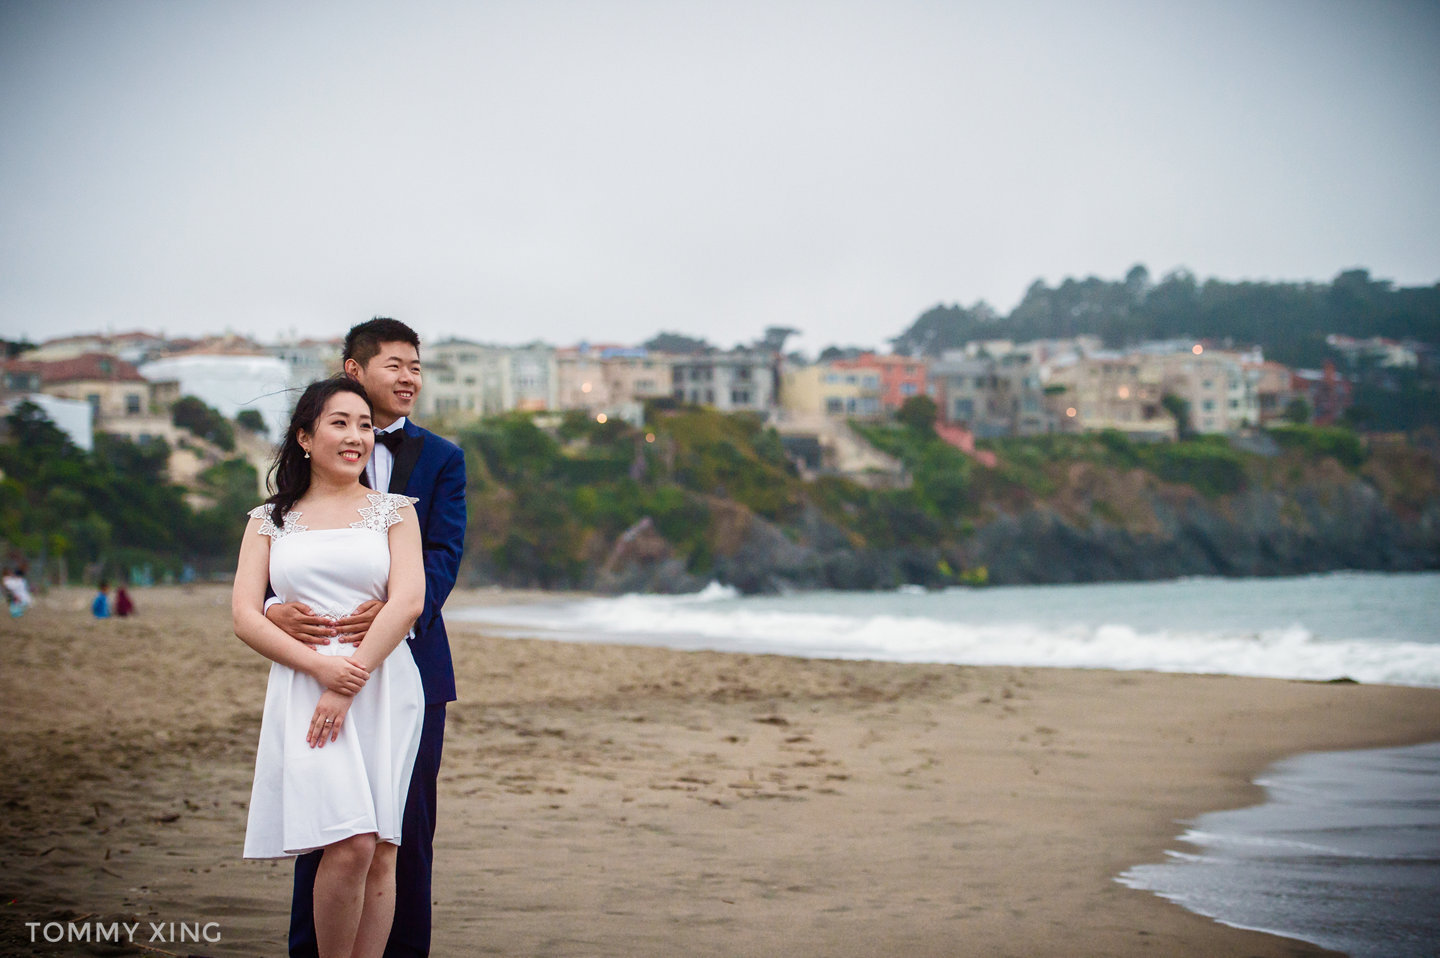 San Francisco Pre Wedding 美国旧金山湾区婚纱照 摄影师Tommy Xing Photography 30.jpg